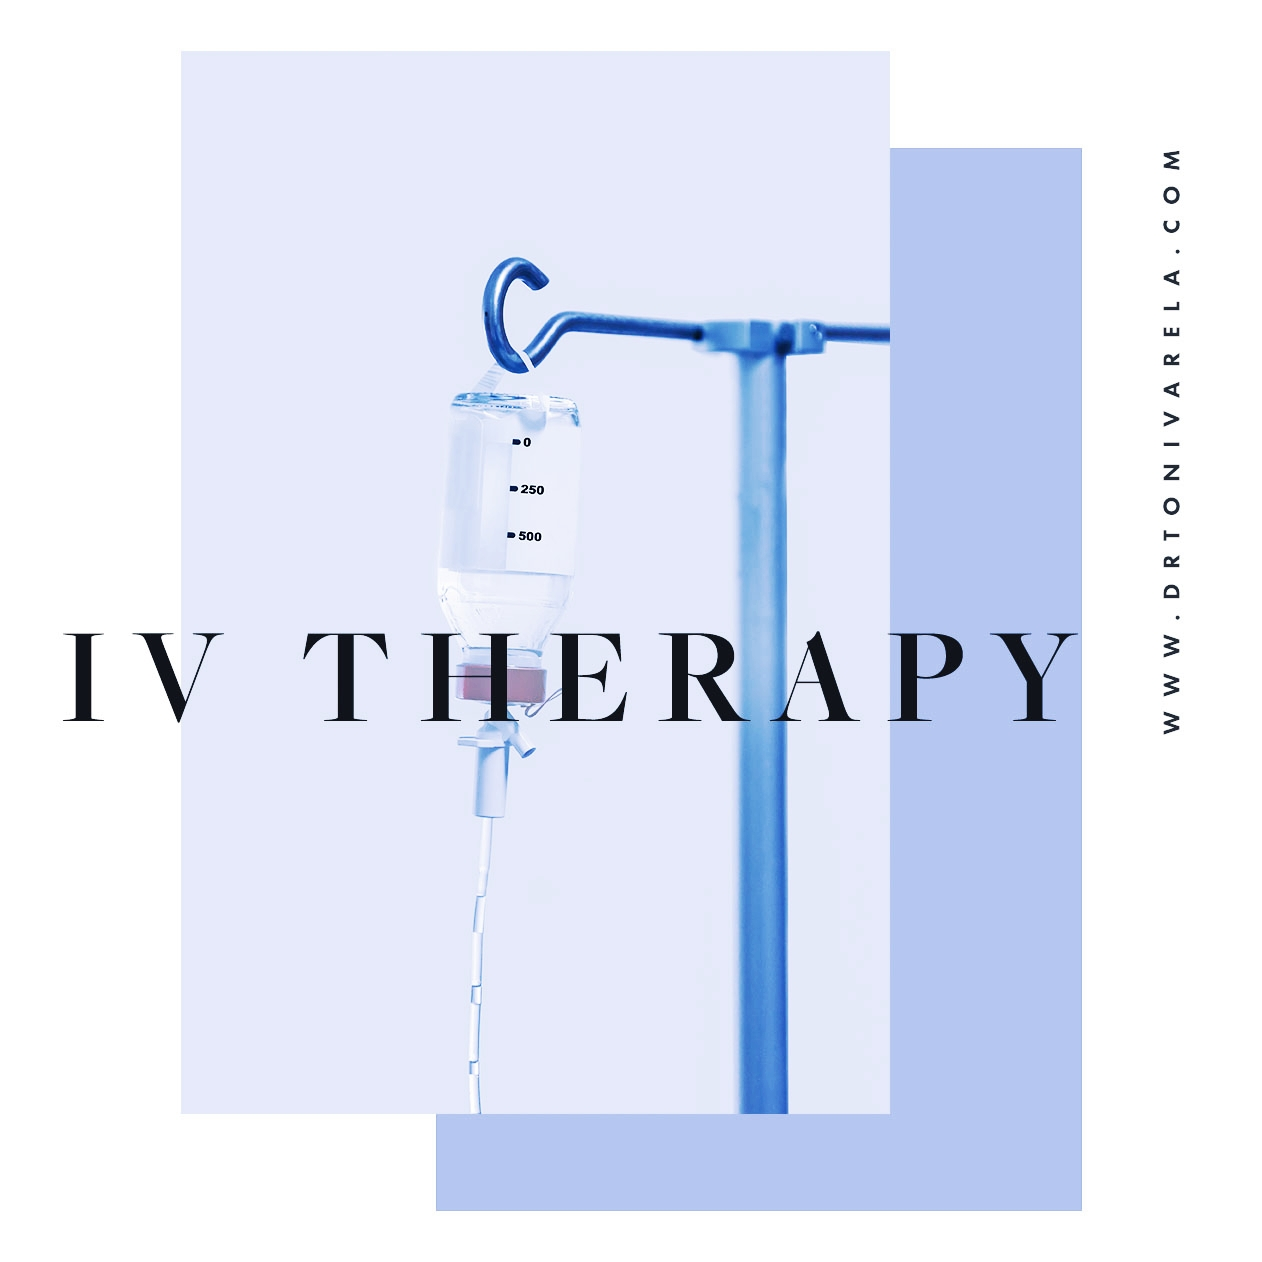 INTRAVENOUS THERAPY - Intravenous (IV) Therapies involve immediate delivery of fluids, medications, vitamins, minerals, homeopathy, ozone, and amino acids directly into the bloodstream, yielding 100% bio-available absorption. As an acute and preventative treatment, IV therapy has been successfully used for a wide array of health conditions, including dehydration, pain, cancer, autoimmune disease, asthma, migraines, leaky gut, colitis, anxiety, stress, fatigue, infections, toxicity, etc. By achieving nutritional blood concentrations difficult or even impossible to obtain orally, IV therapy can be effectively and efficiently life-changing, especially for the 75% of the US population that suffer from chronic disease. Dr. Varela individually examines every patient and administers every custom IV appropriate to one's needs. Aside from the conventional IV bag, IV Pushes are available for quick minute infusions & treatment add-ons for those